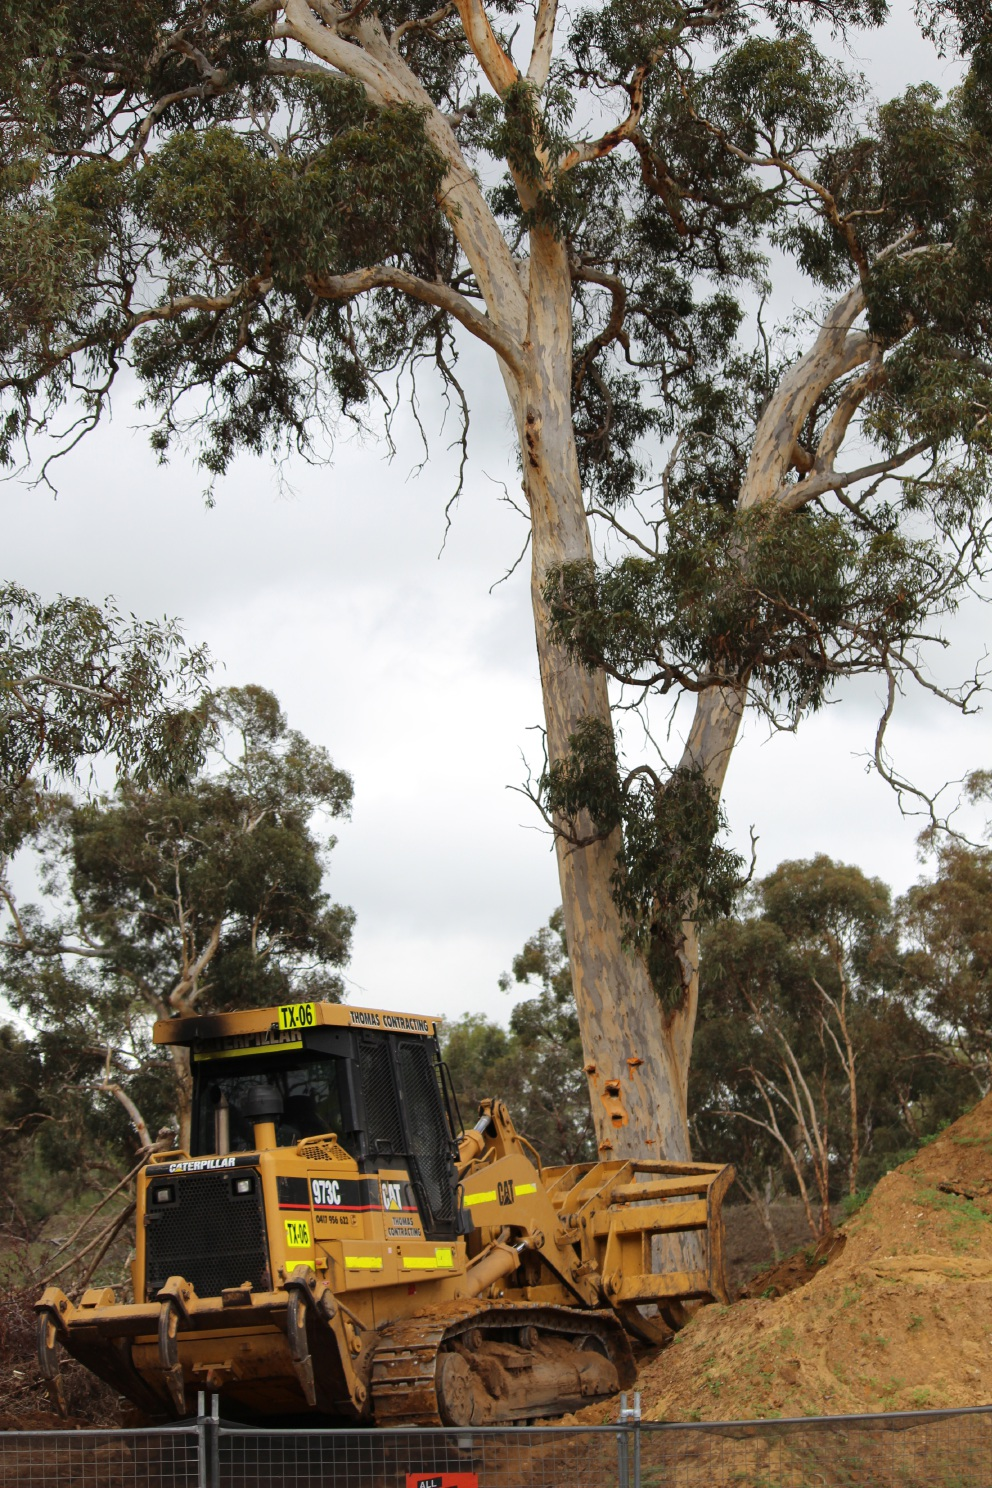 Wandoo trees bulldozed for Pindan housing development in Viveash